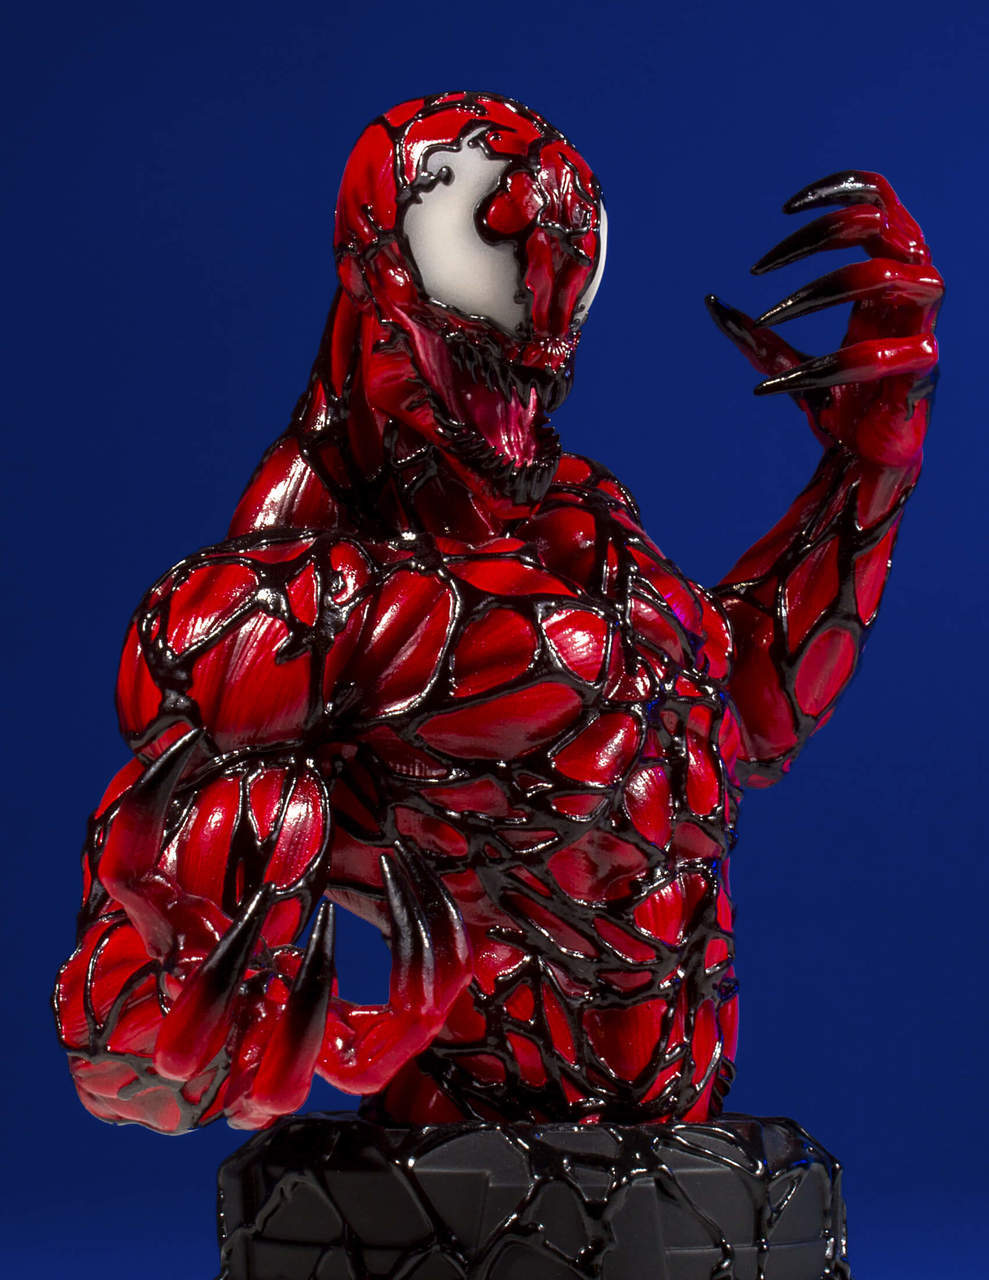 Marvel Comics Carnage Bust by Gentle Giant - The Toyark - News  |Carnage Bust